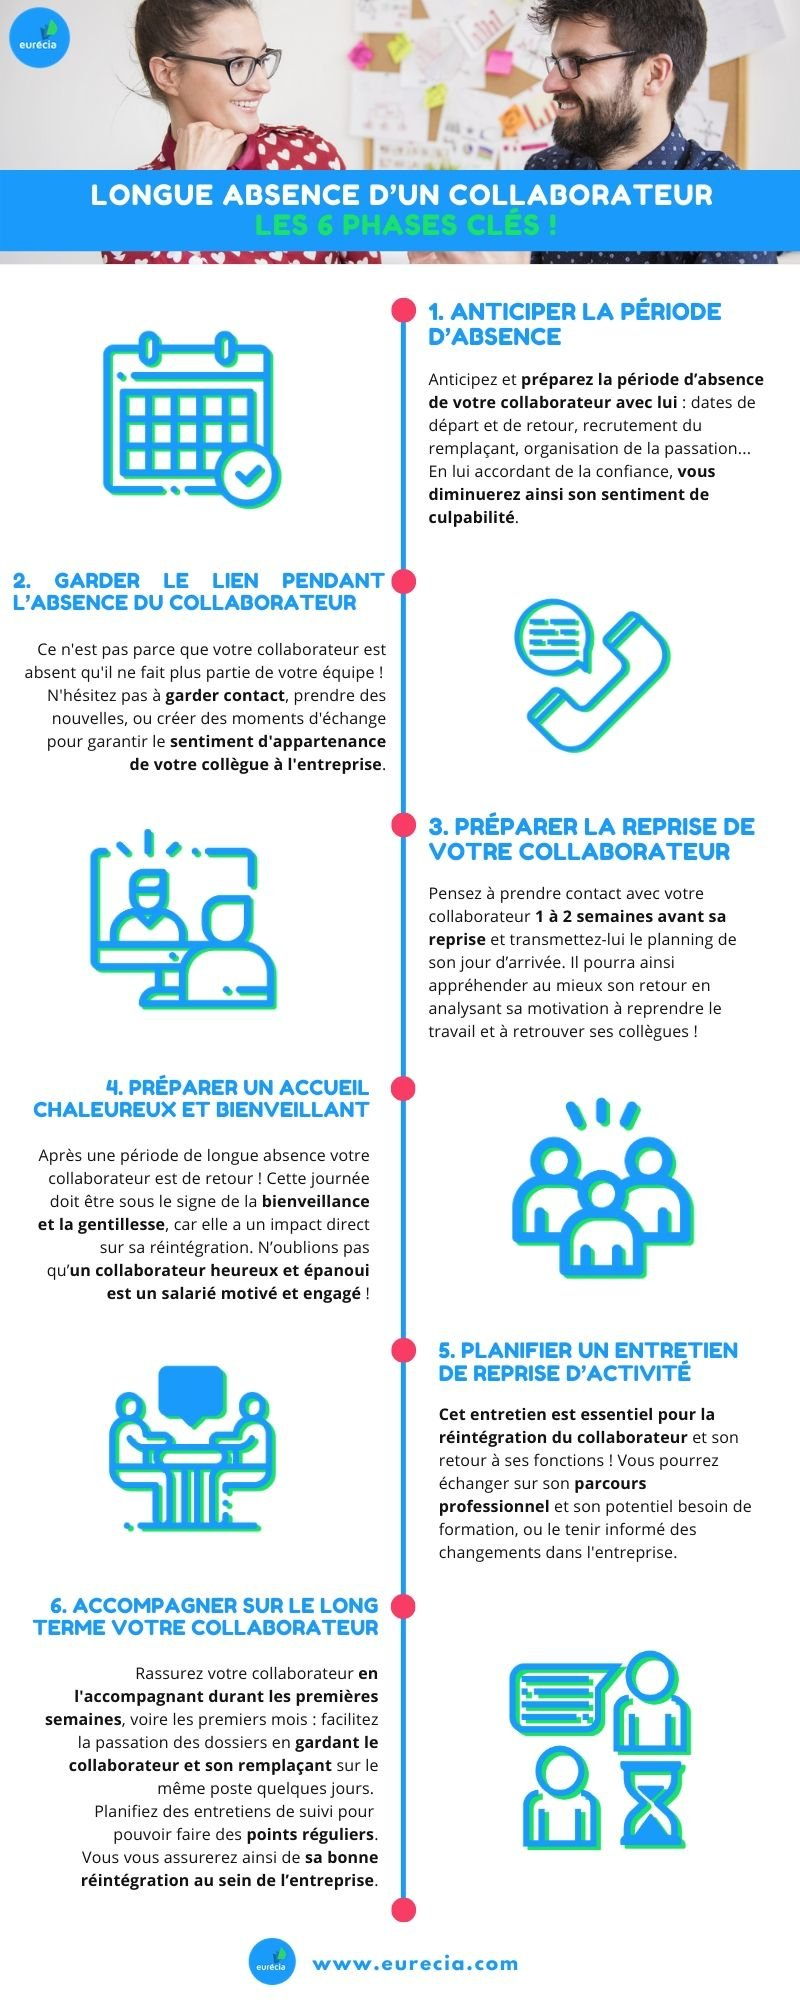 infographie-longue-absence-collaborateur.jpg